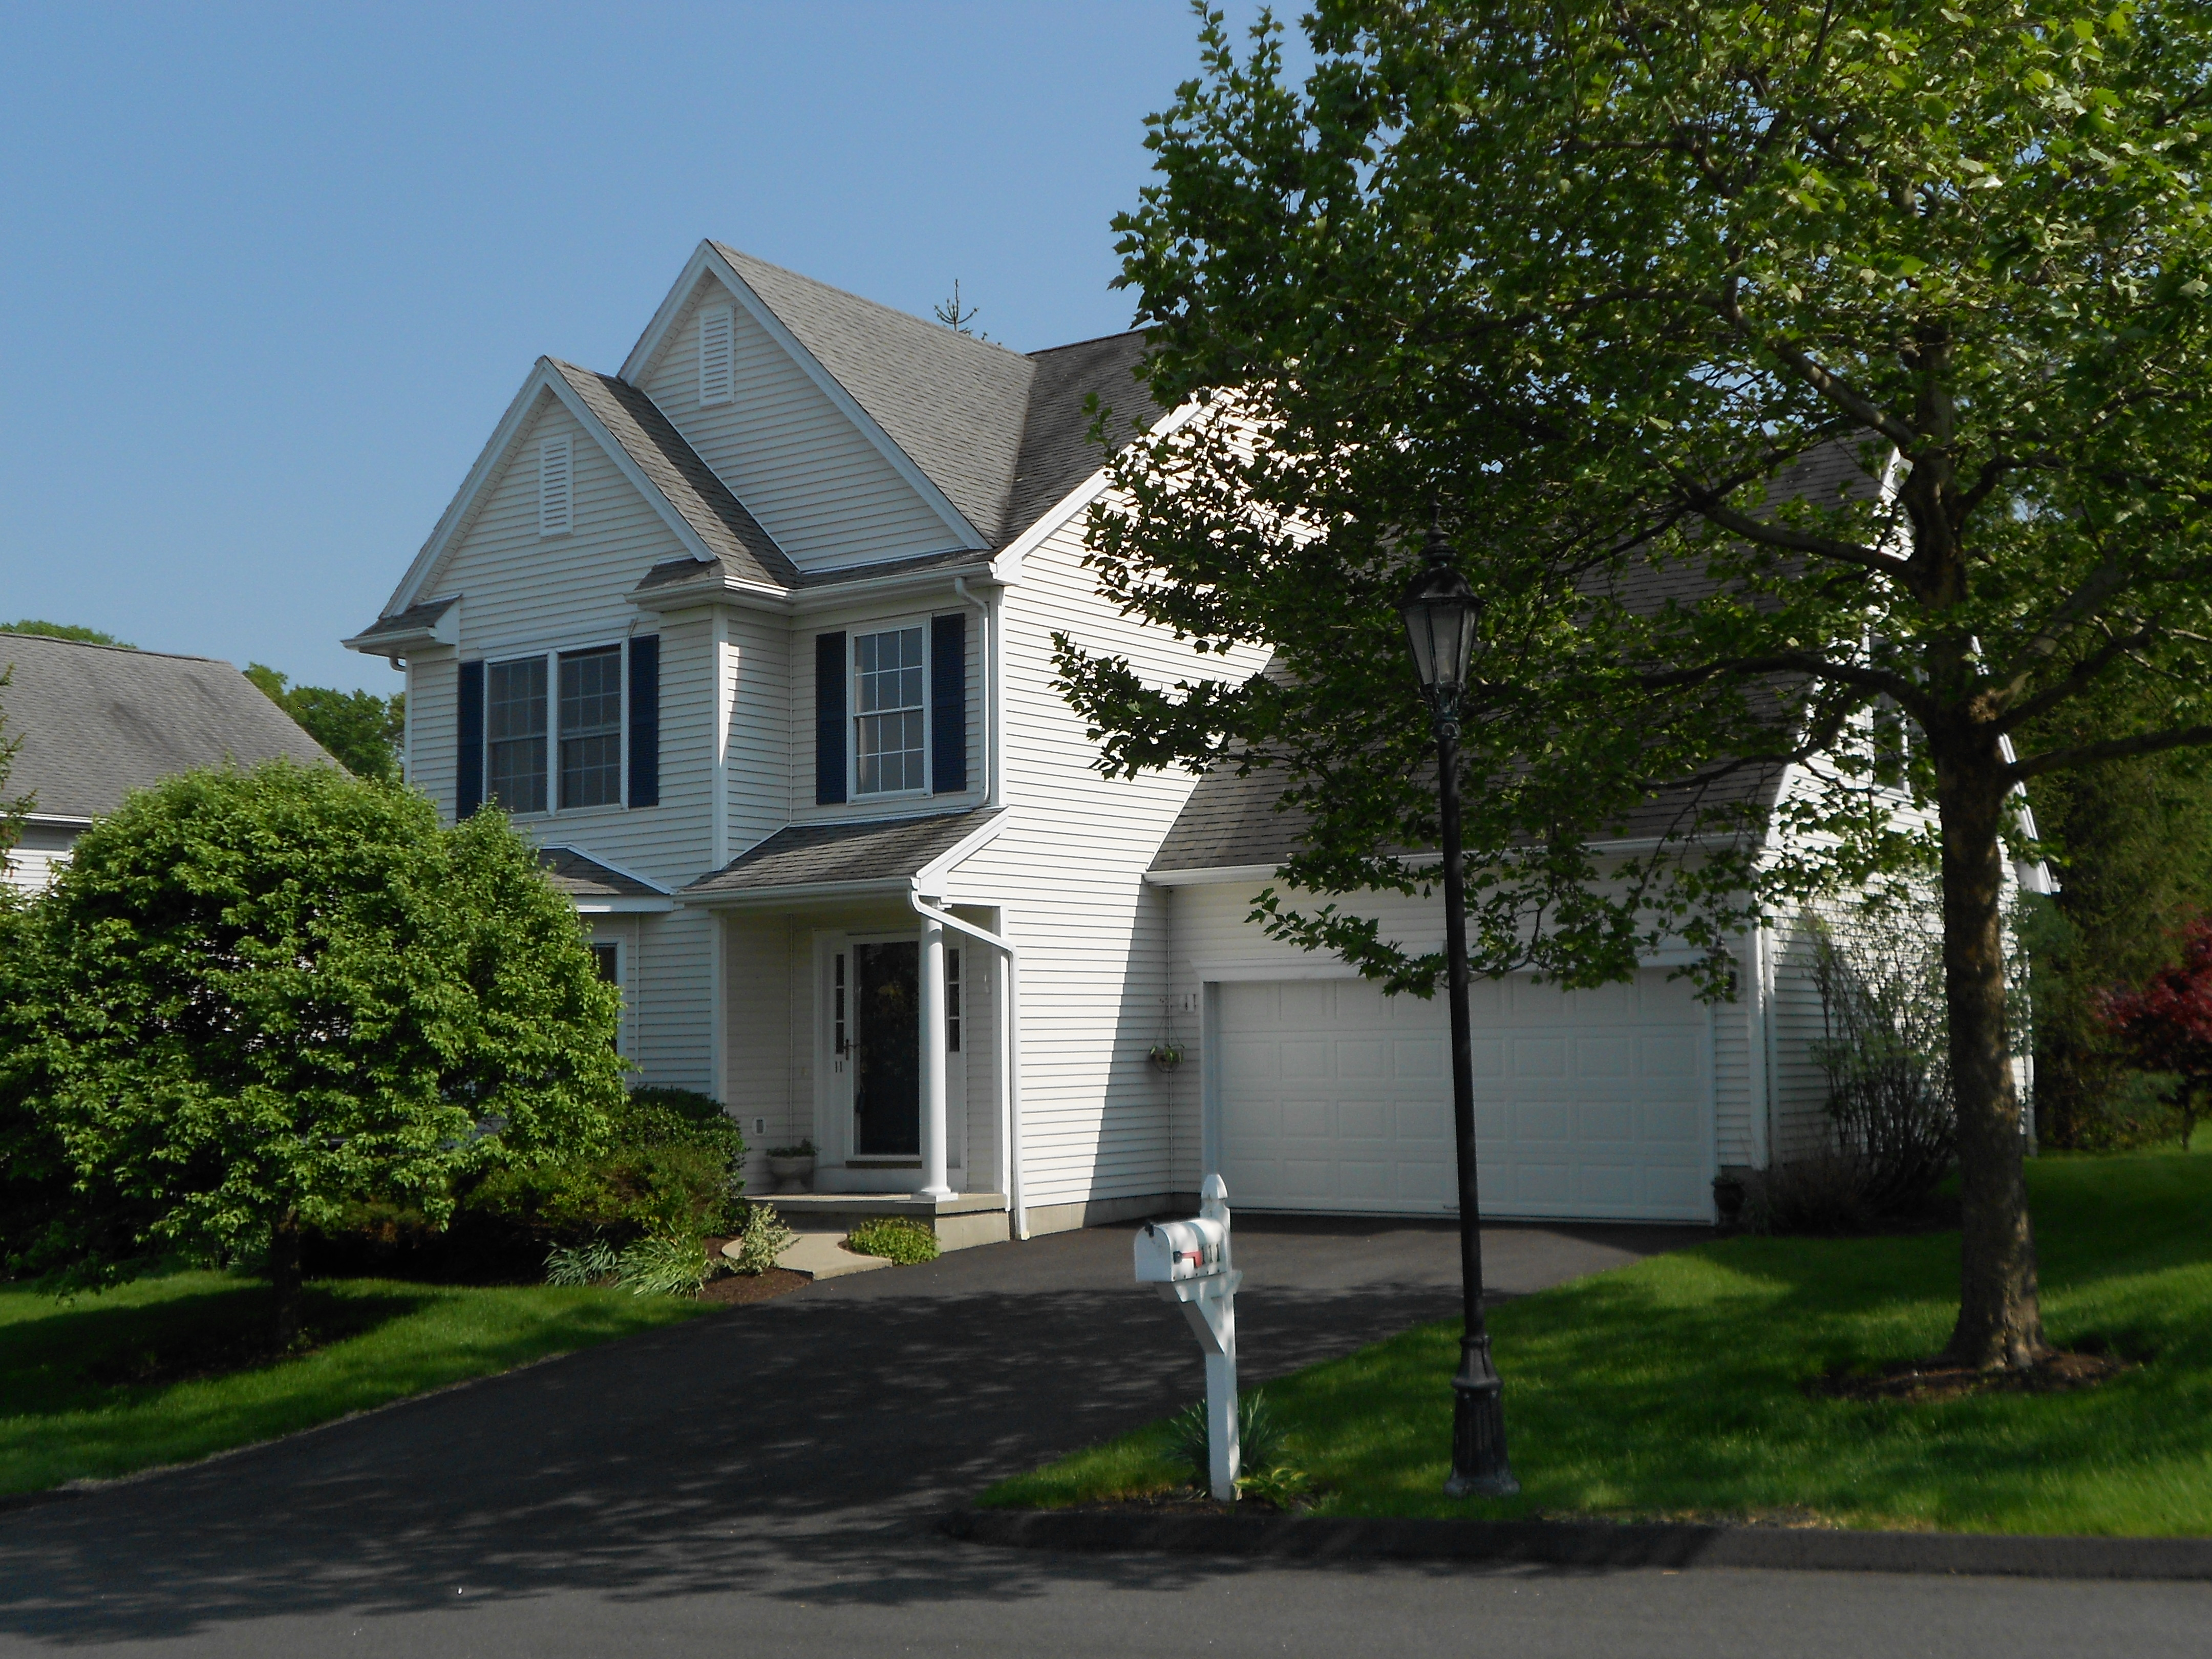 Single Family Home for Sale at Free Standing 3 Bedroom Colonial 111 Logging Trail Road Danbury, Connecticut, 06811 United States